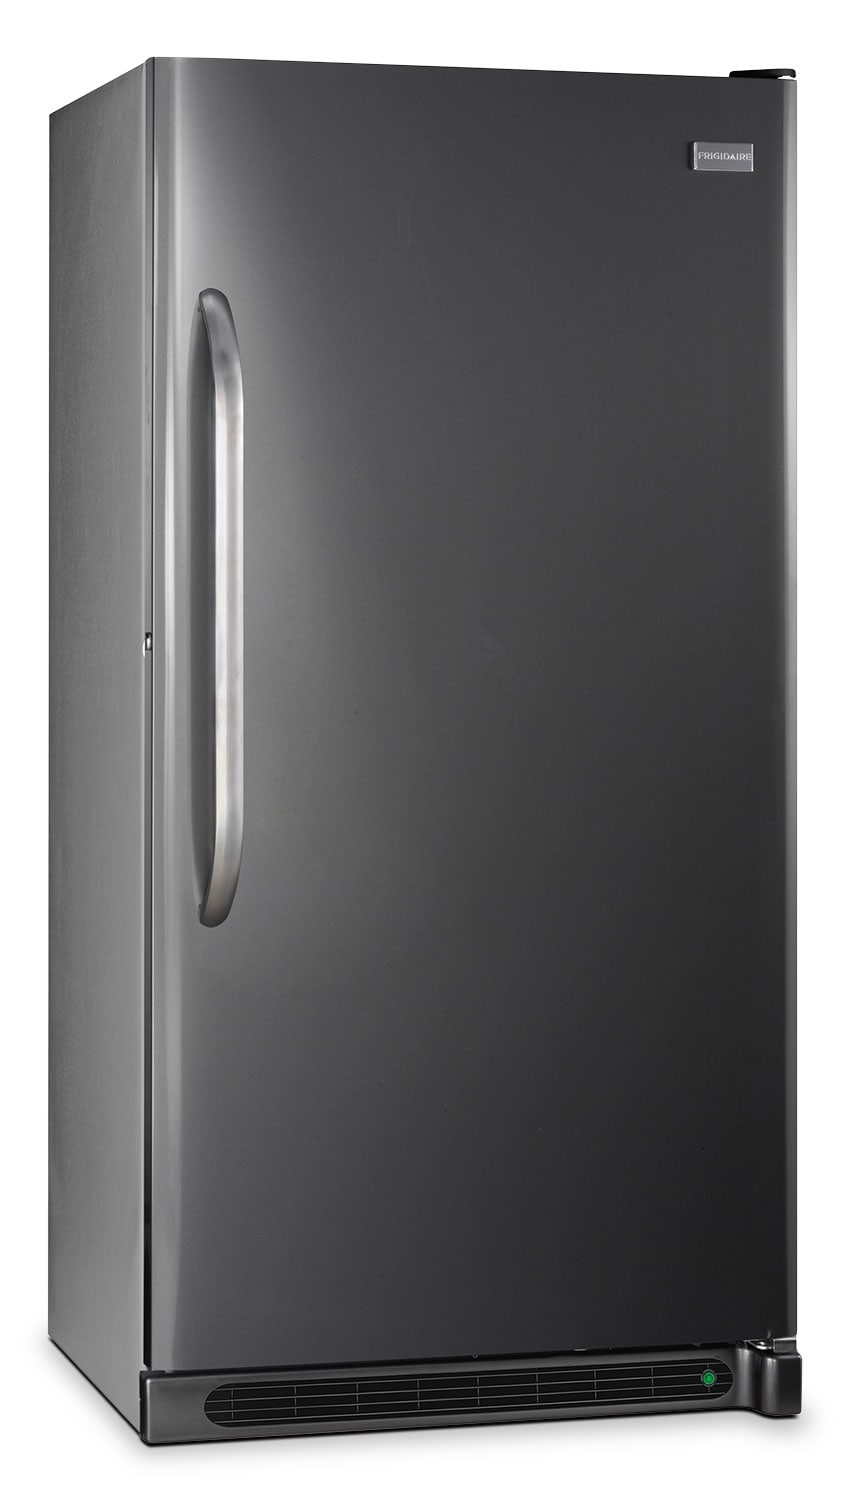 Frigidaire Titanium Upright Freezer (16.7 Cu. Ft.) - FFFH17F4QT